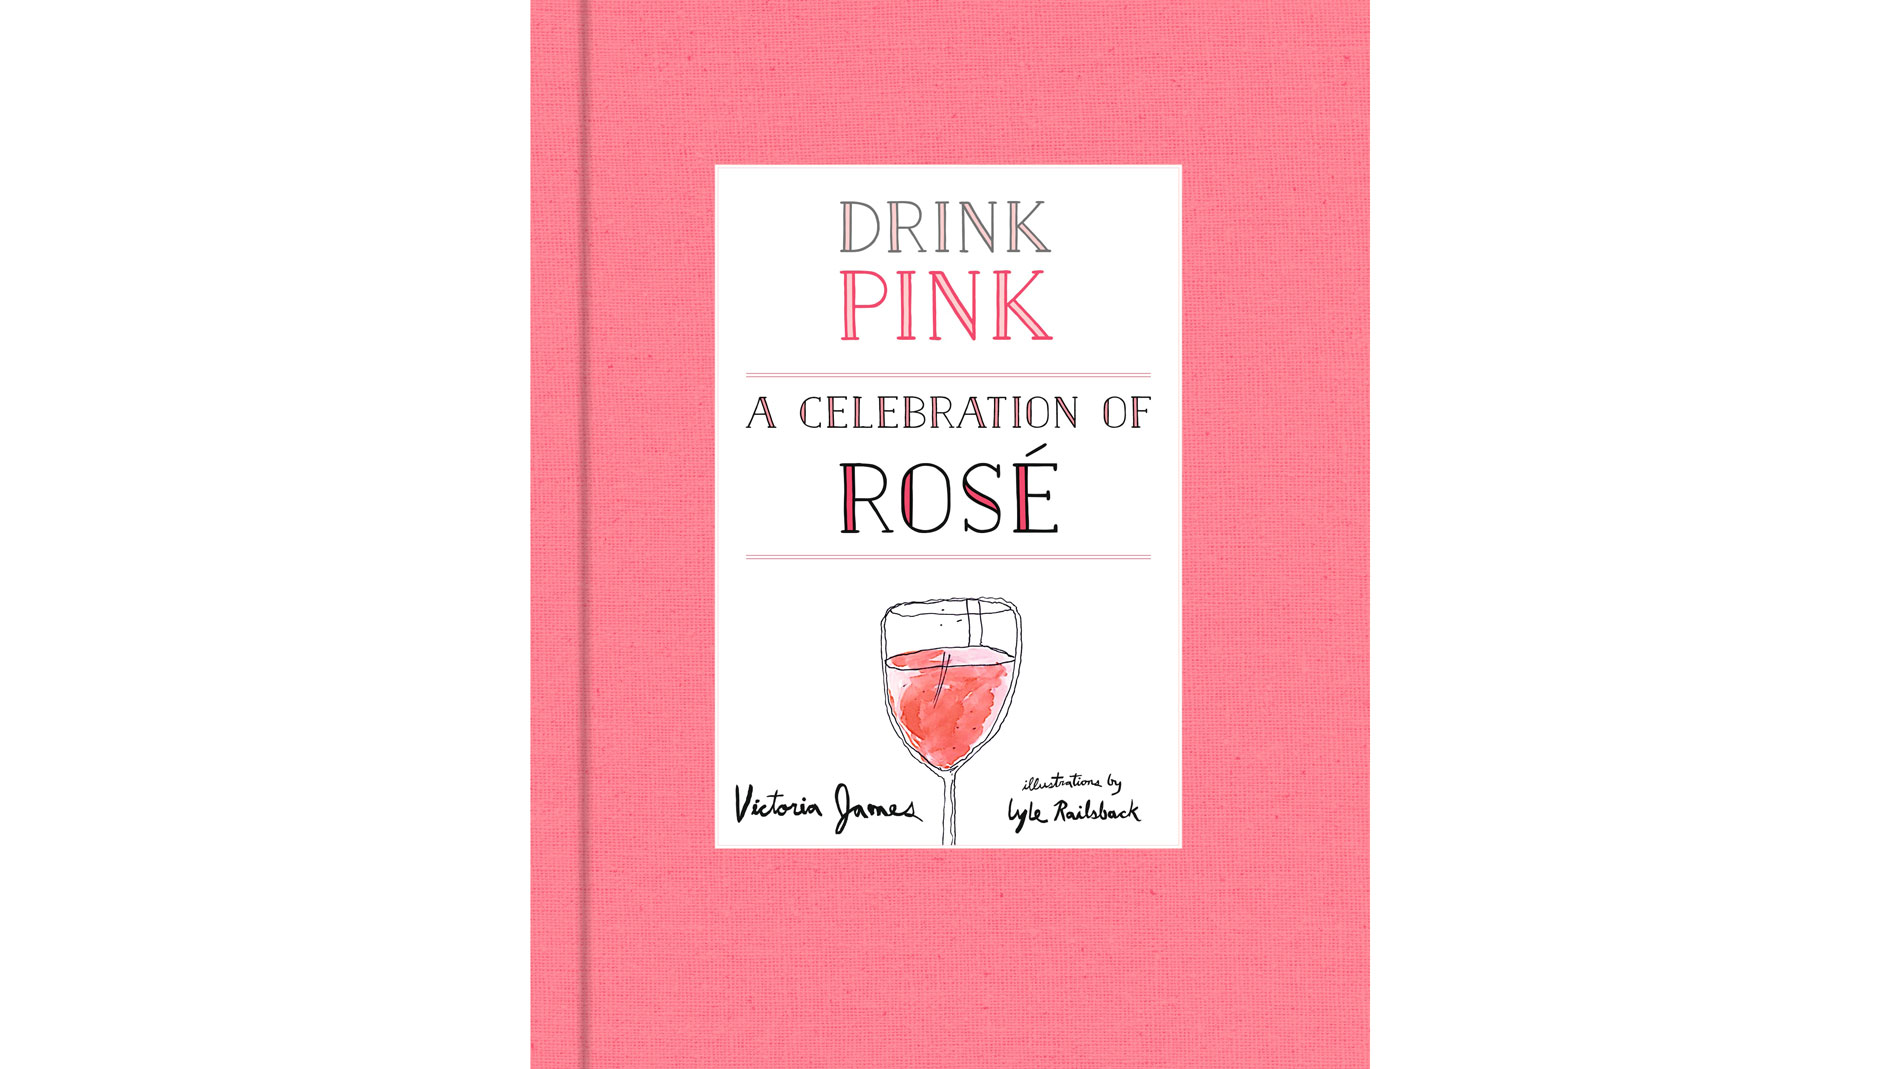 Drink Pink: A Celebration of Rose